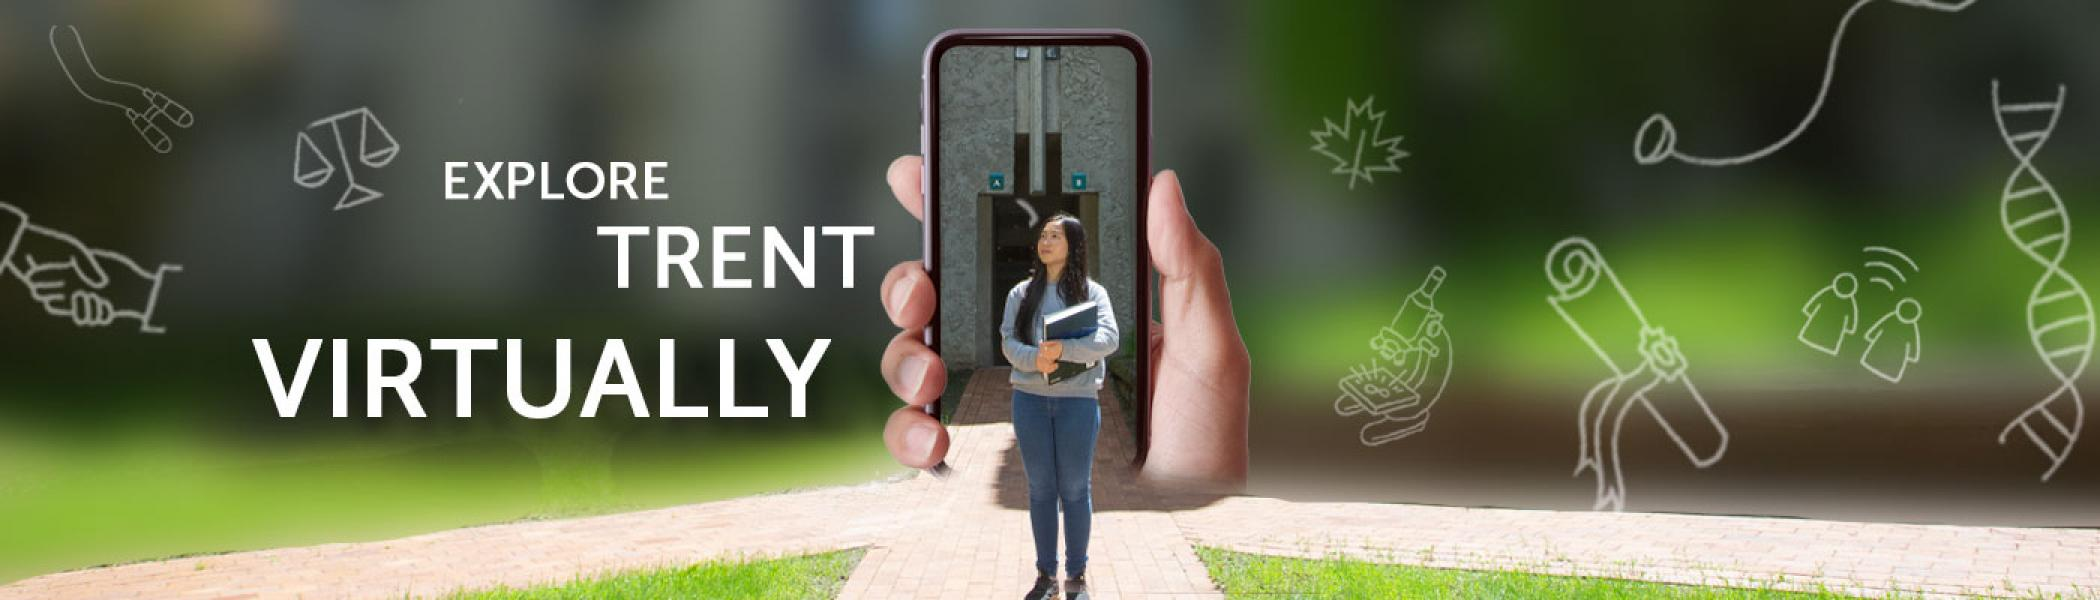 Explore Trent Virtually, student standing in Champlain Courtyard with a cellphone behind her.